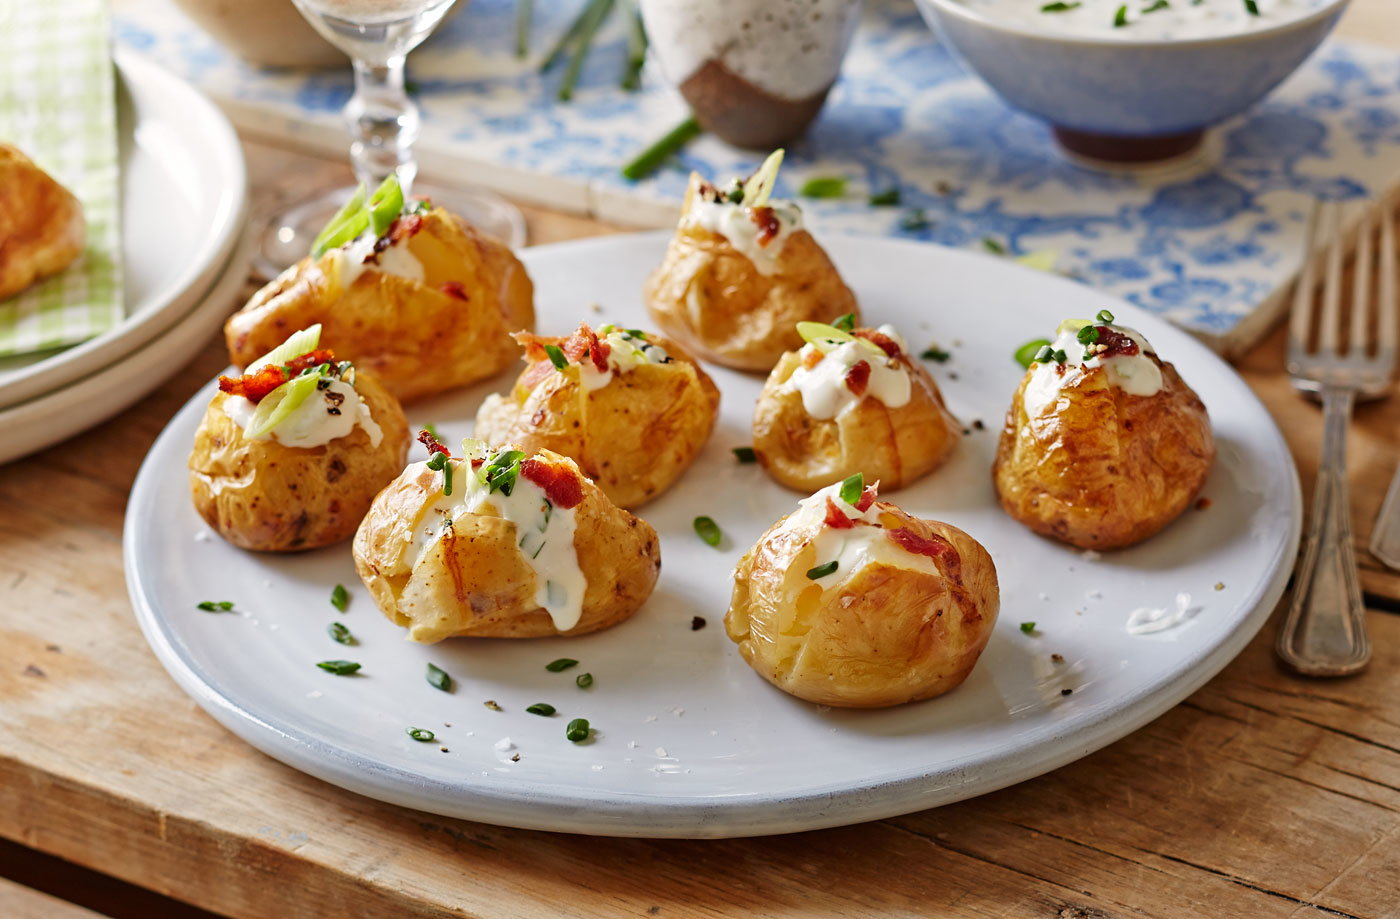 Baked new potatoes with spring onion sour cream and for Easy canape fillings